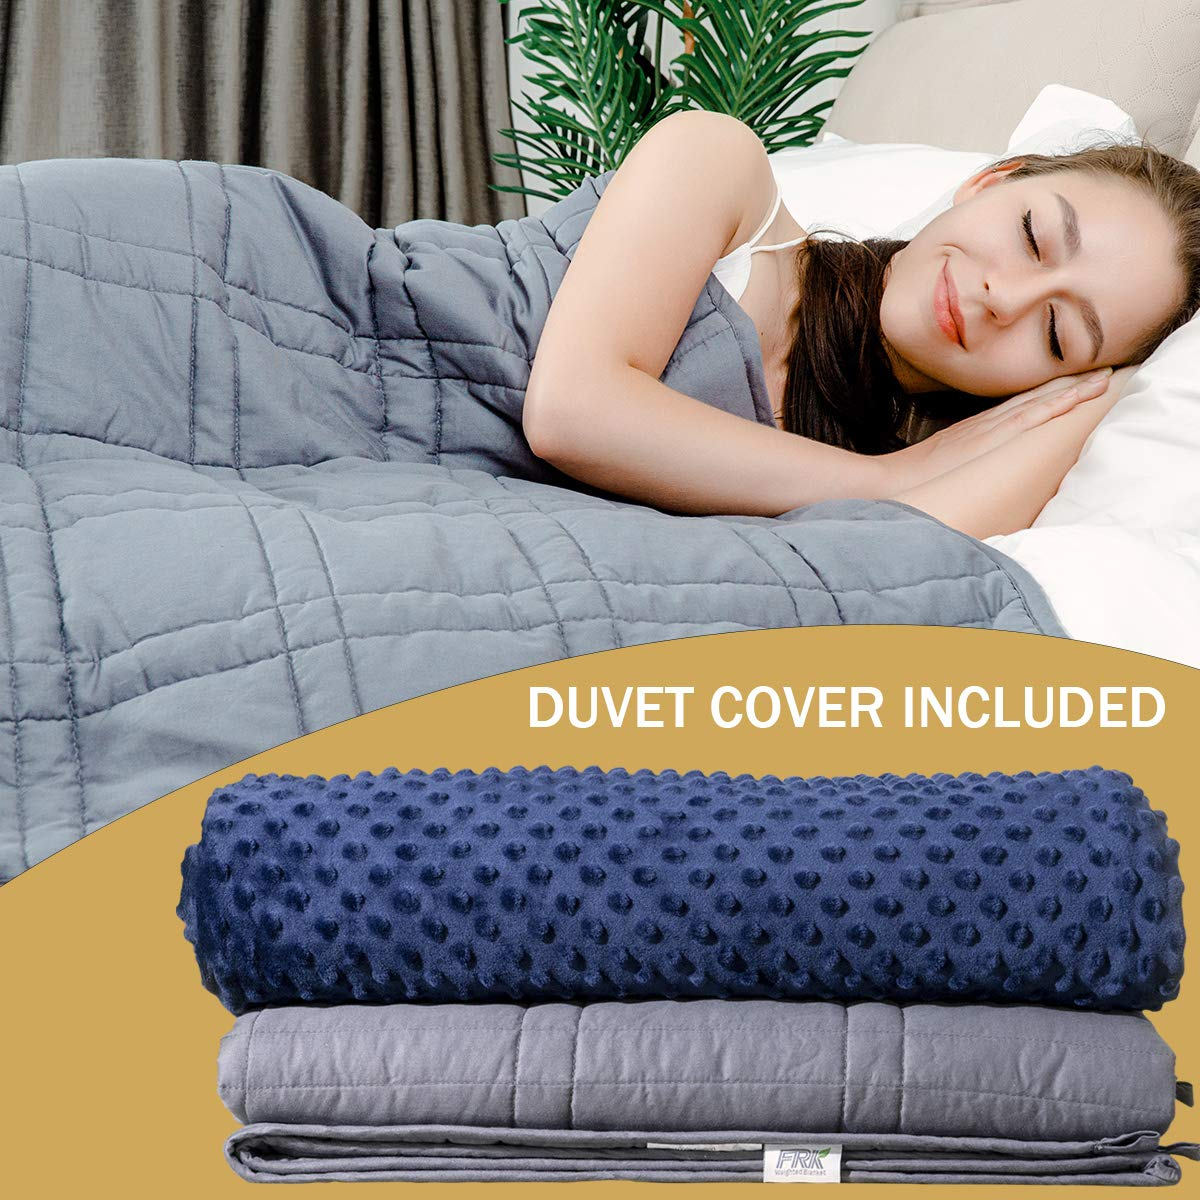 Best Weighted Blanket 2020.Amazon Com Frk Weighted Blanket 12 Lbs Queen Size Heavy